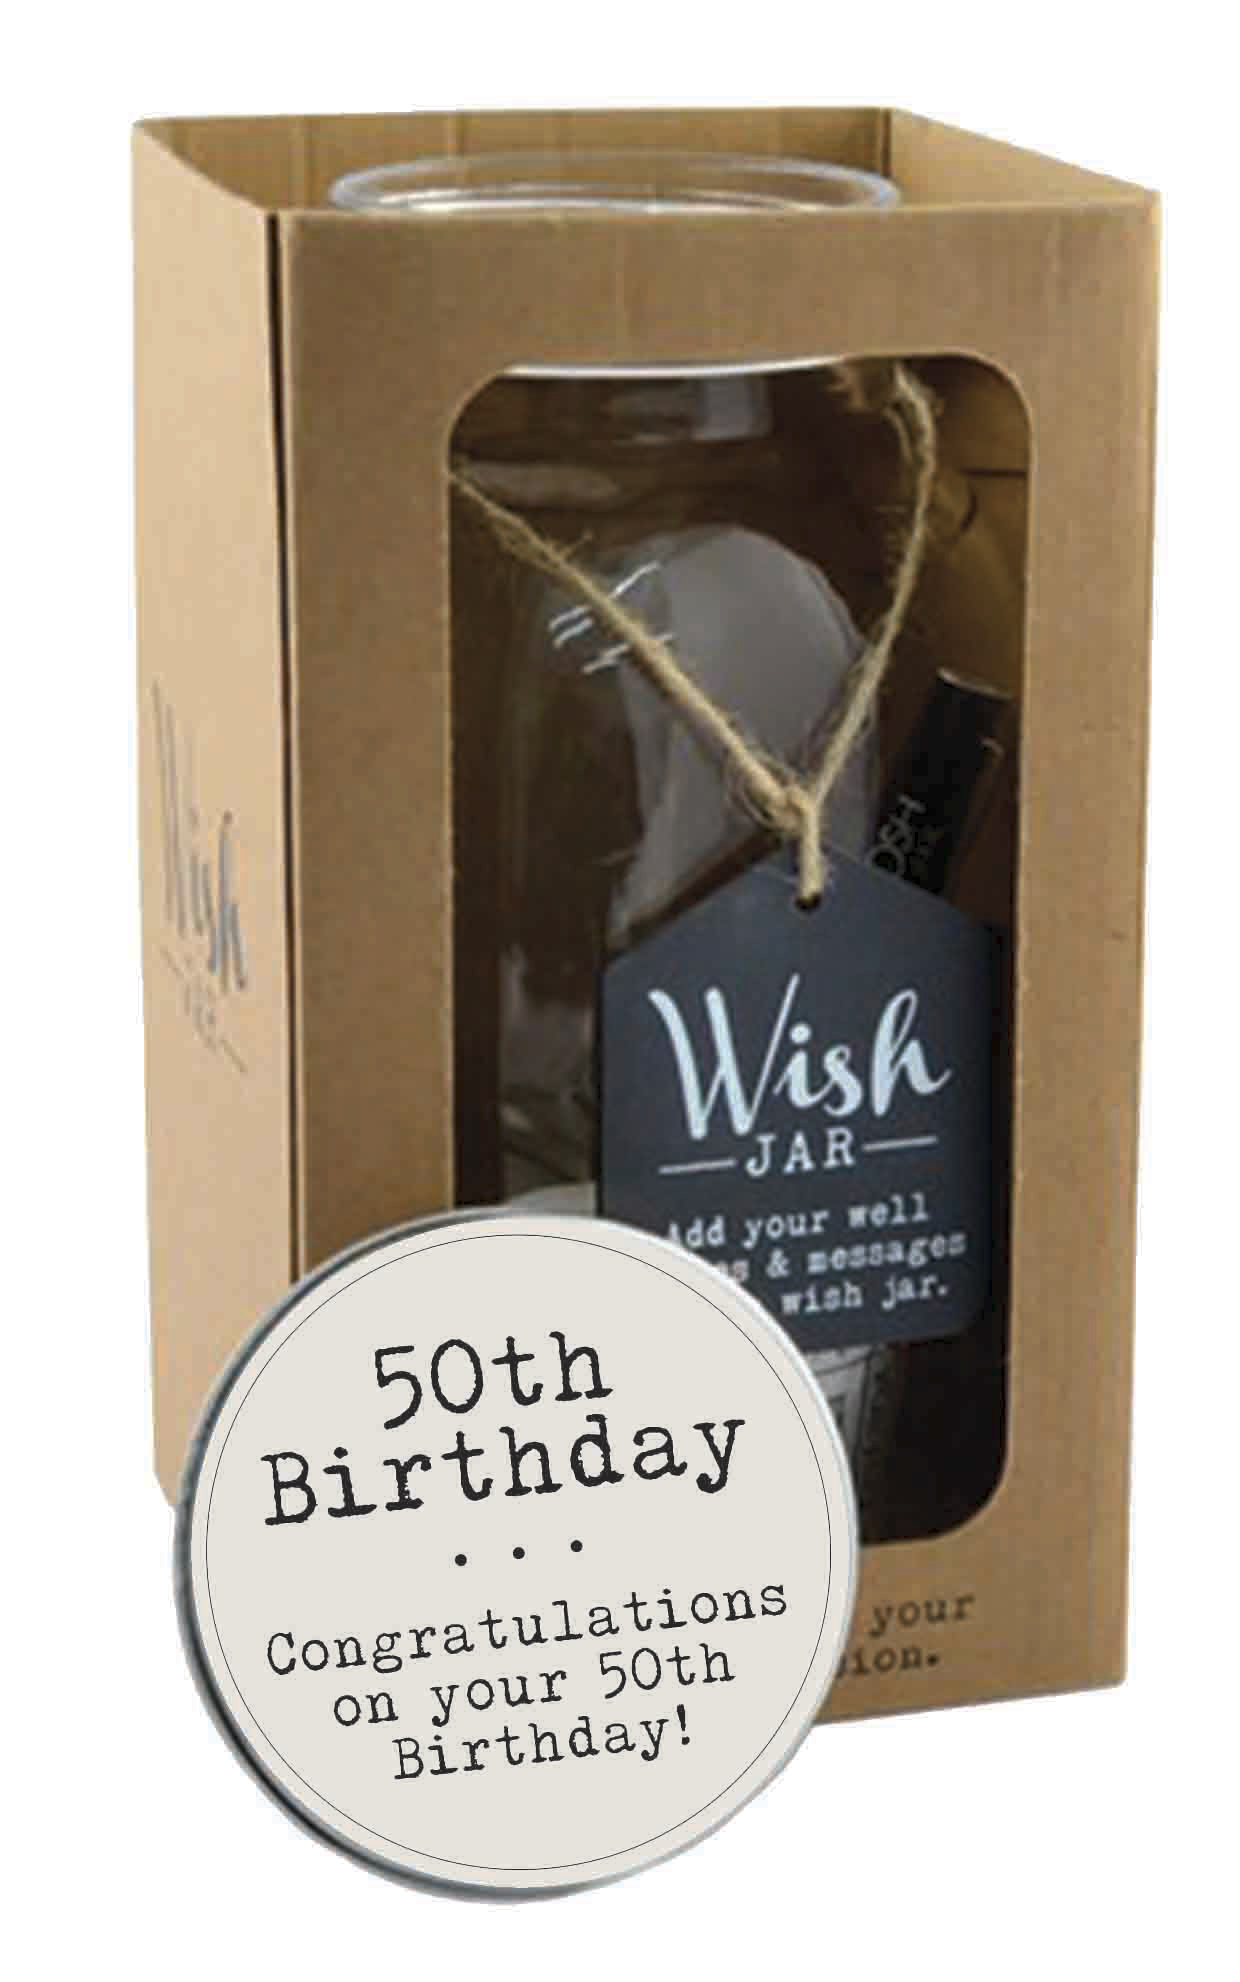 Splosh 50th Birthday Wish Jar Gift Idea Gifts